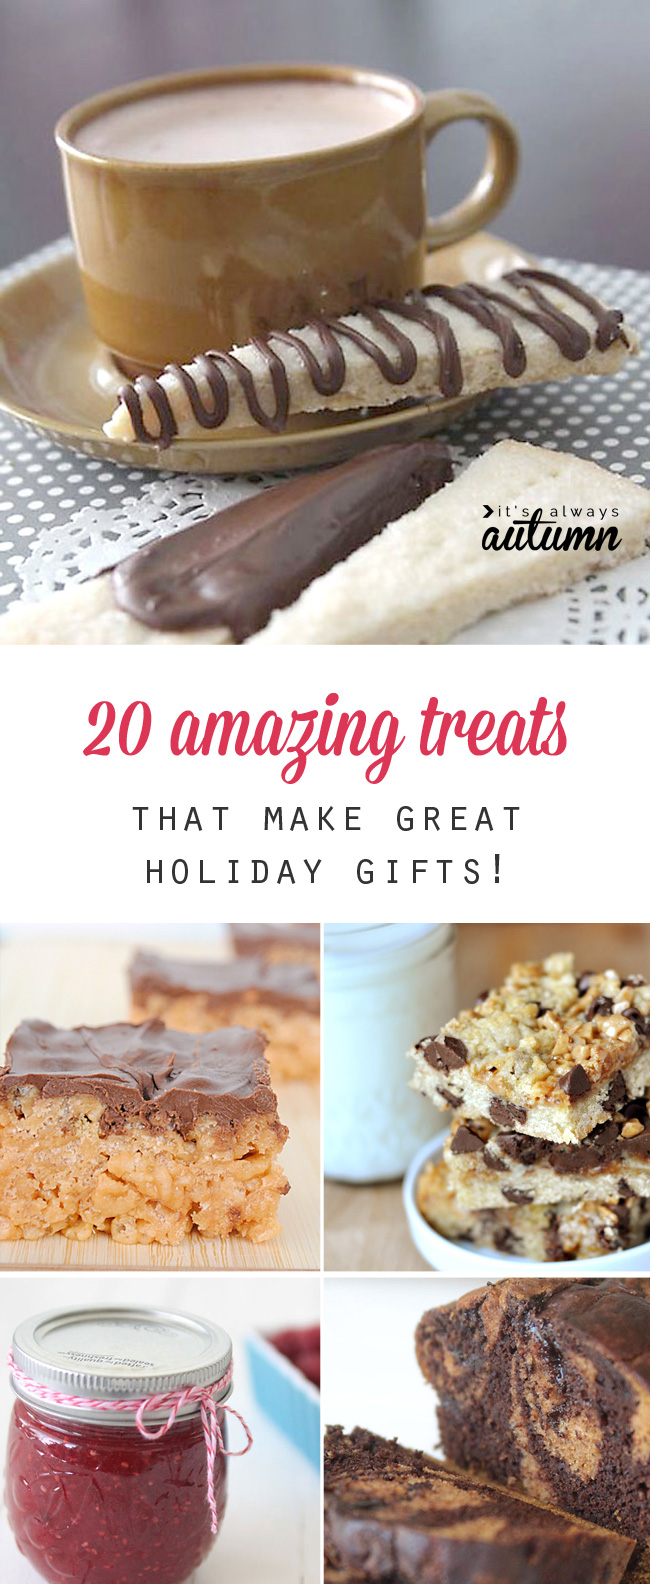 20 tried and true treats that are perfect for holiday gift giving! Neighbor gift ideas.